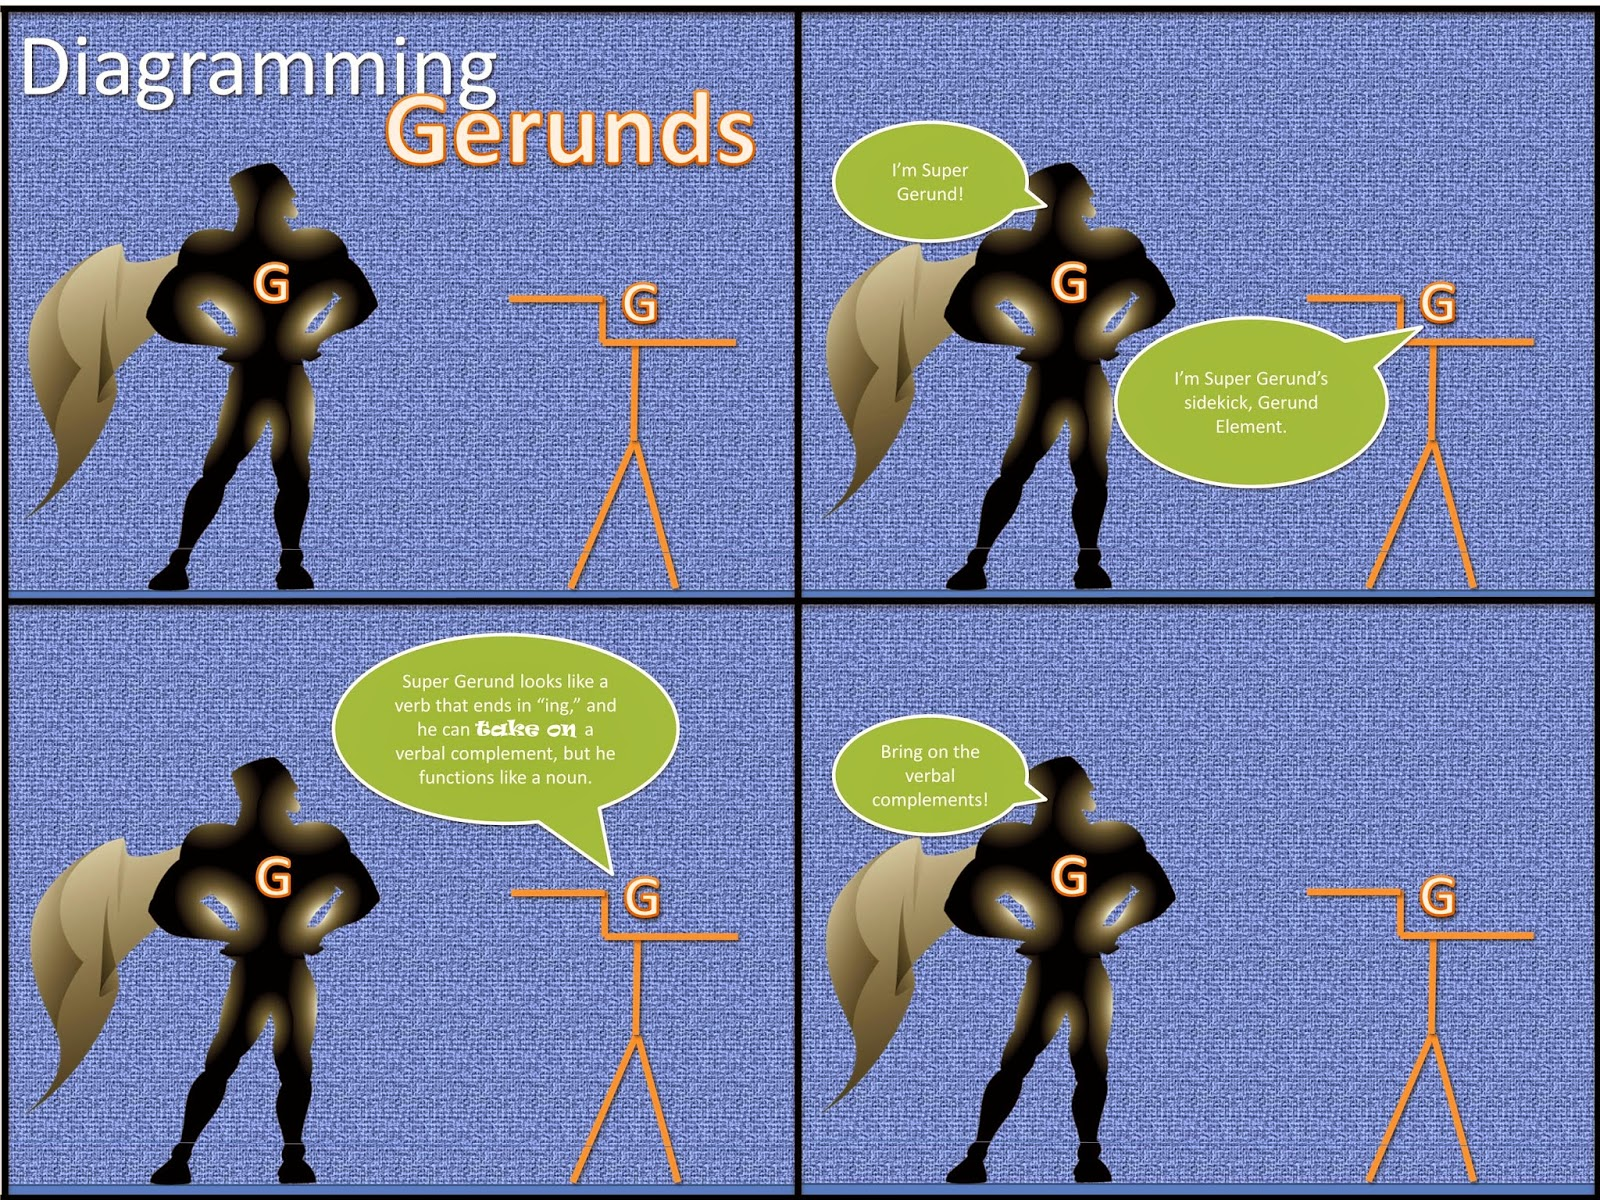 Gypsy daughter essays sentence diagramming diagramming gerunds sentence diagramming diagramming gerunds ccuart Gallery